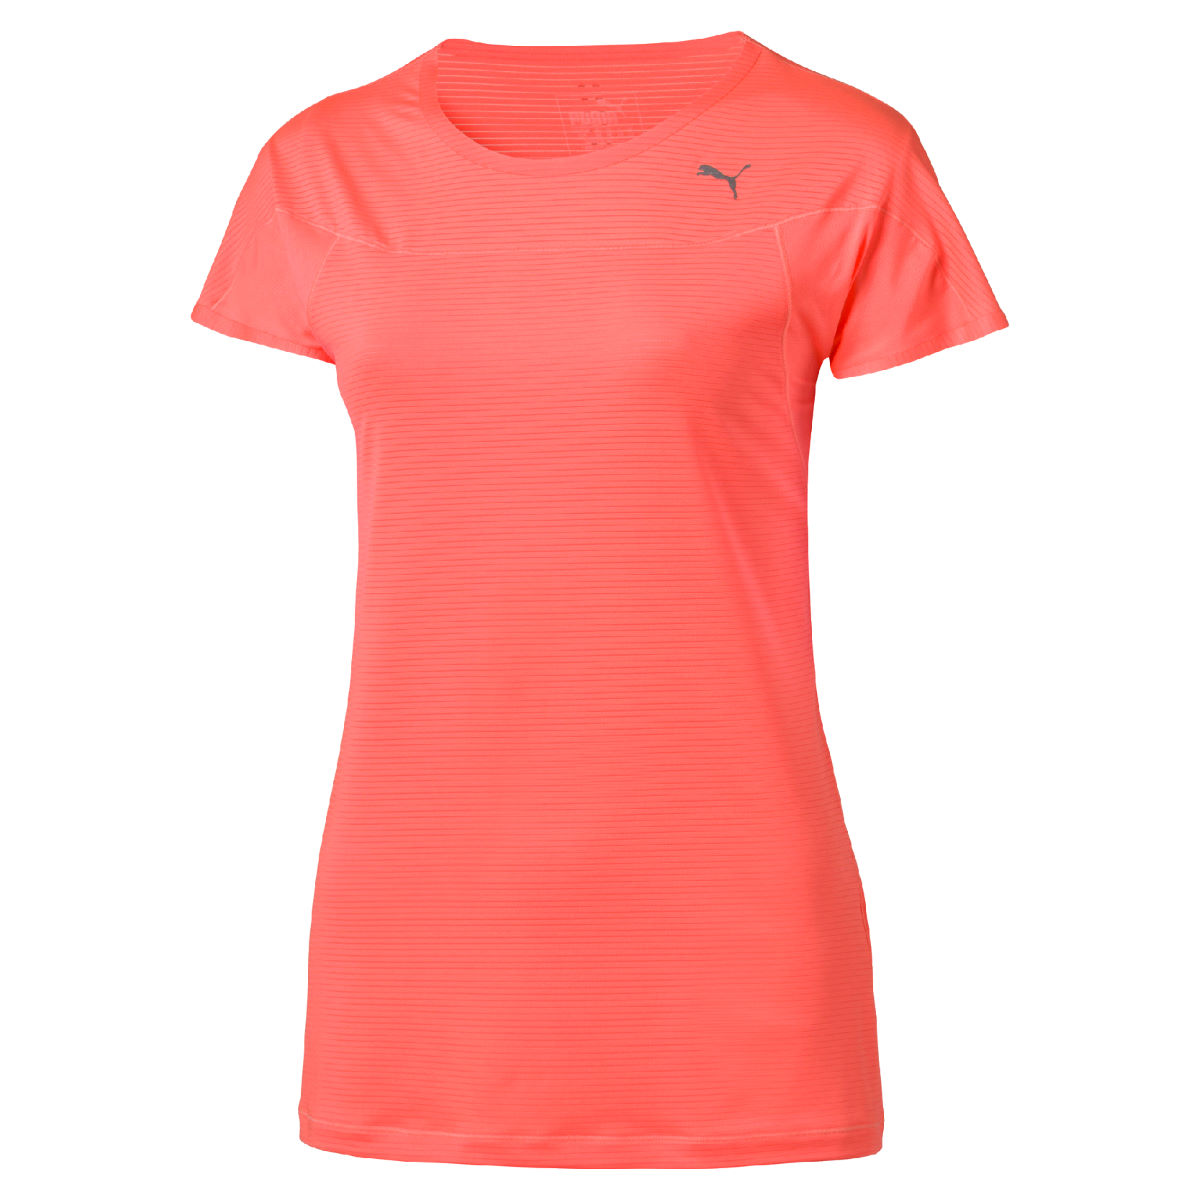 Maillot Femme Puma Speed Run (manches courtes) - XS Nrgy Peach